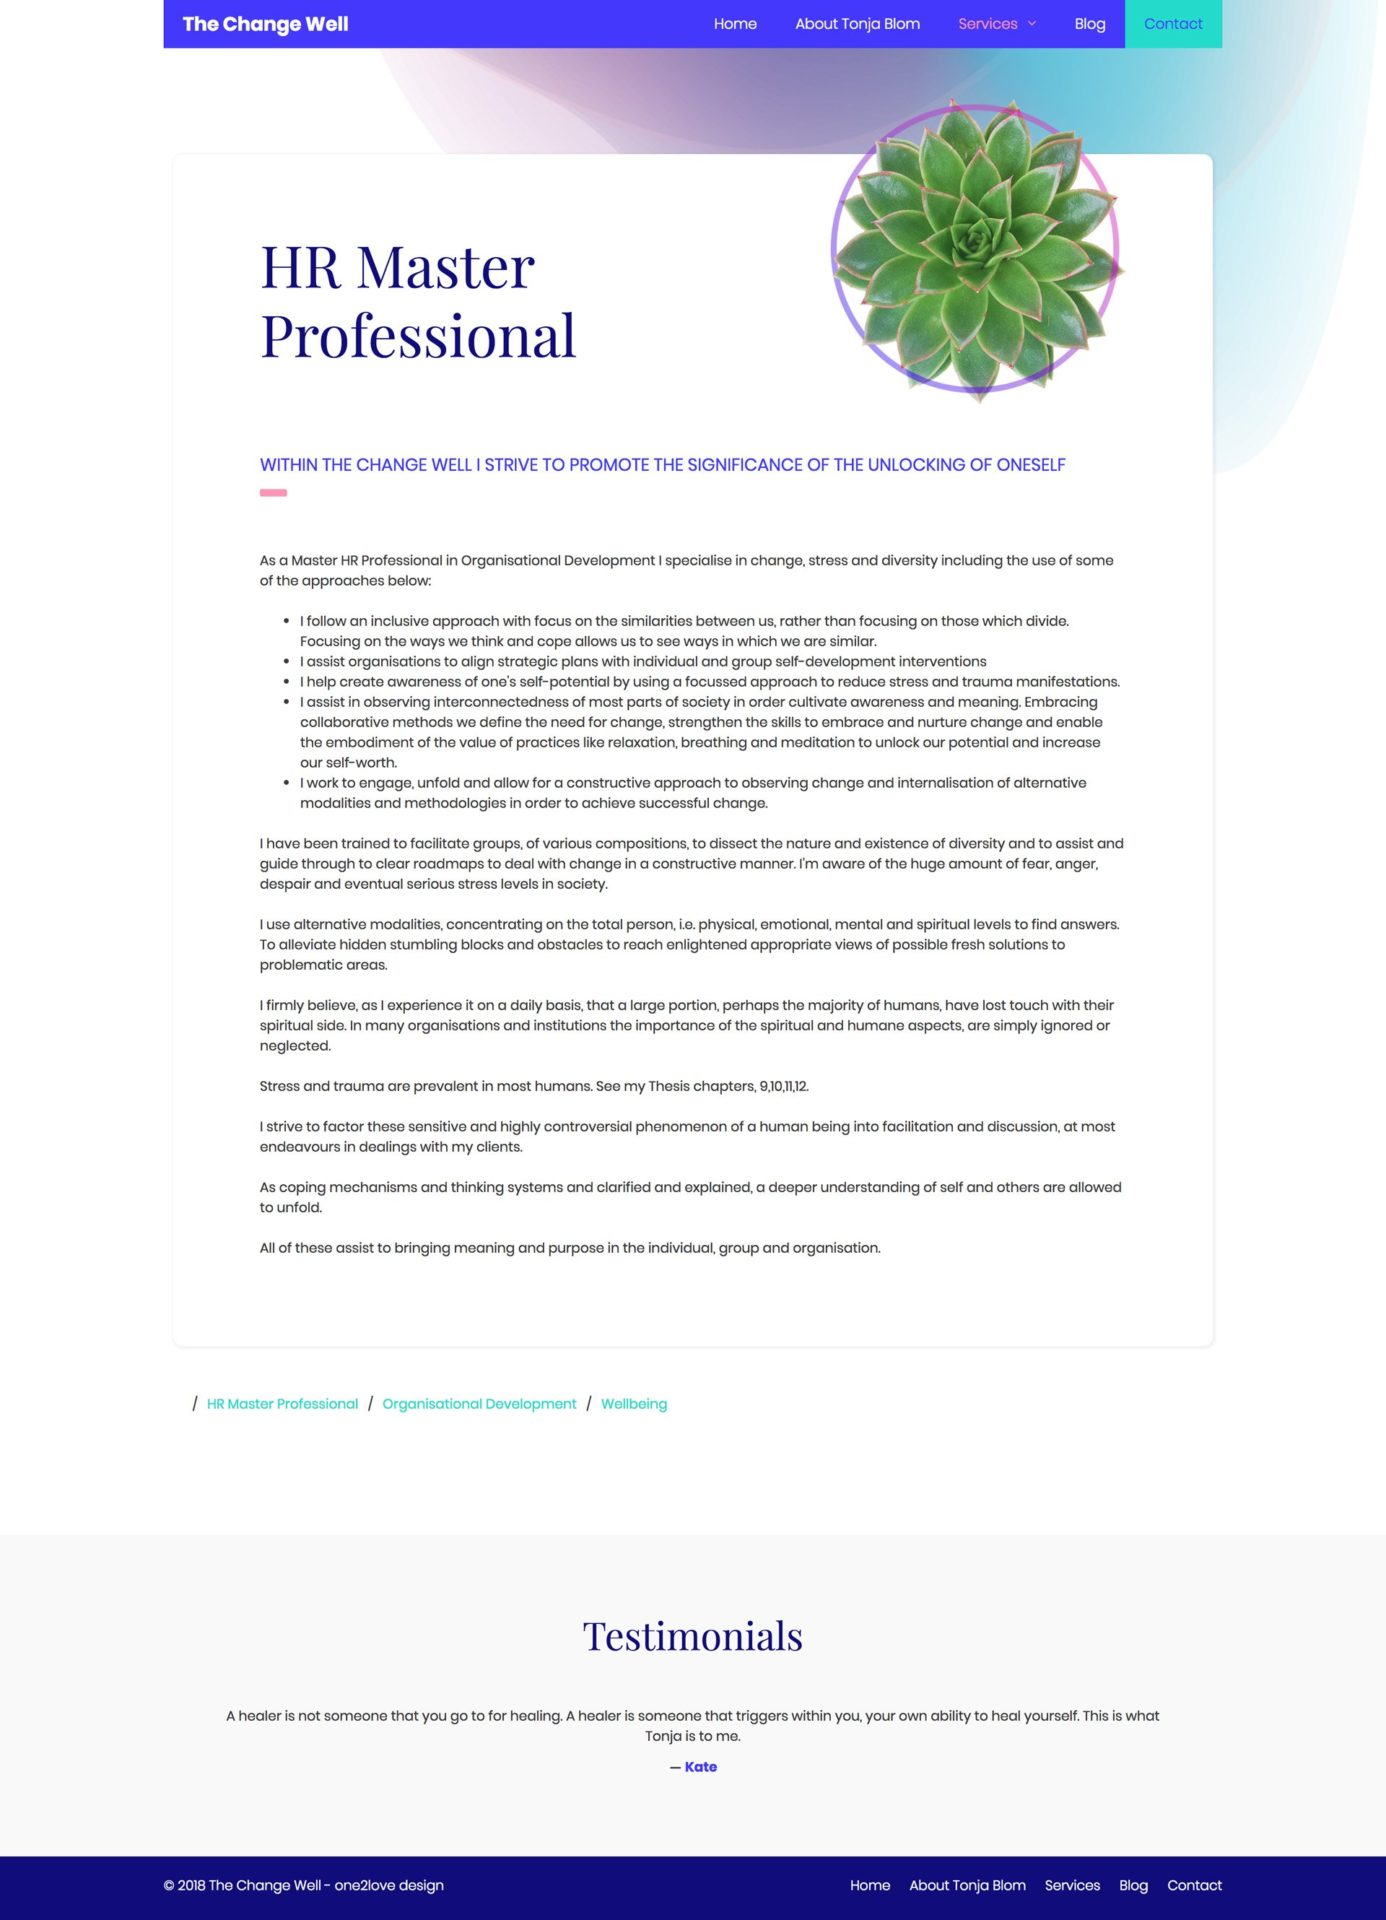 A page about Dr Sonja Blom, as a Master HR Professional in Organisational Development and how she specialises in her area of knowledge